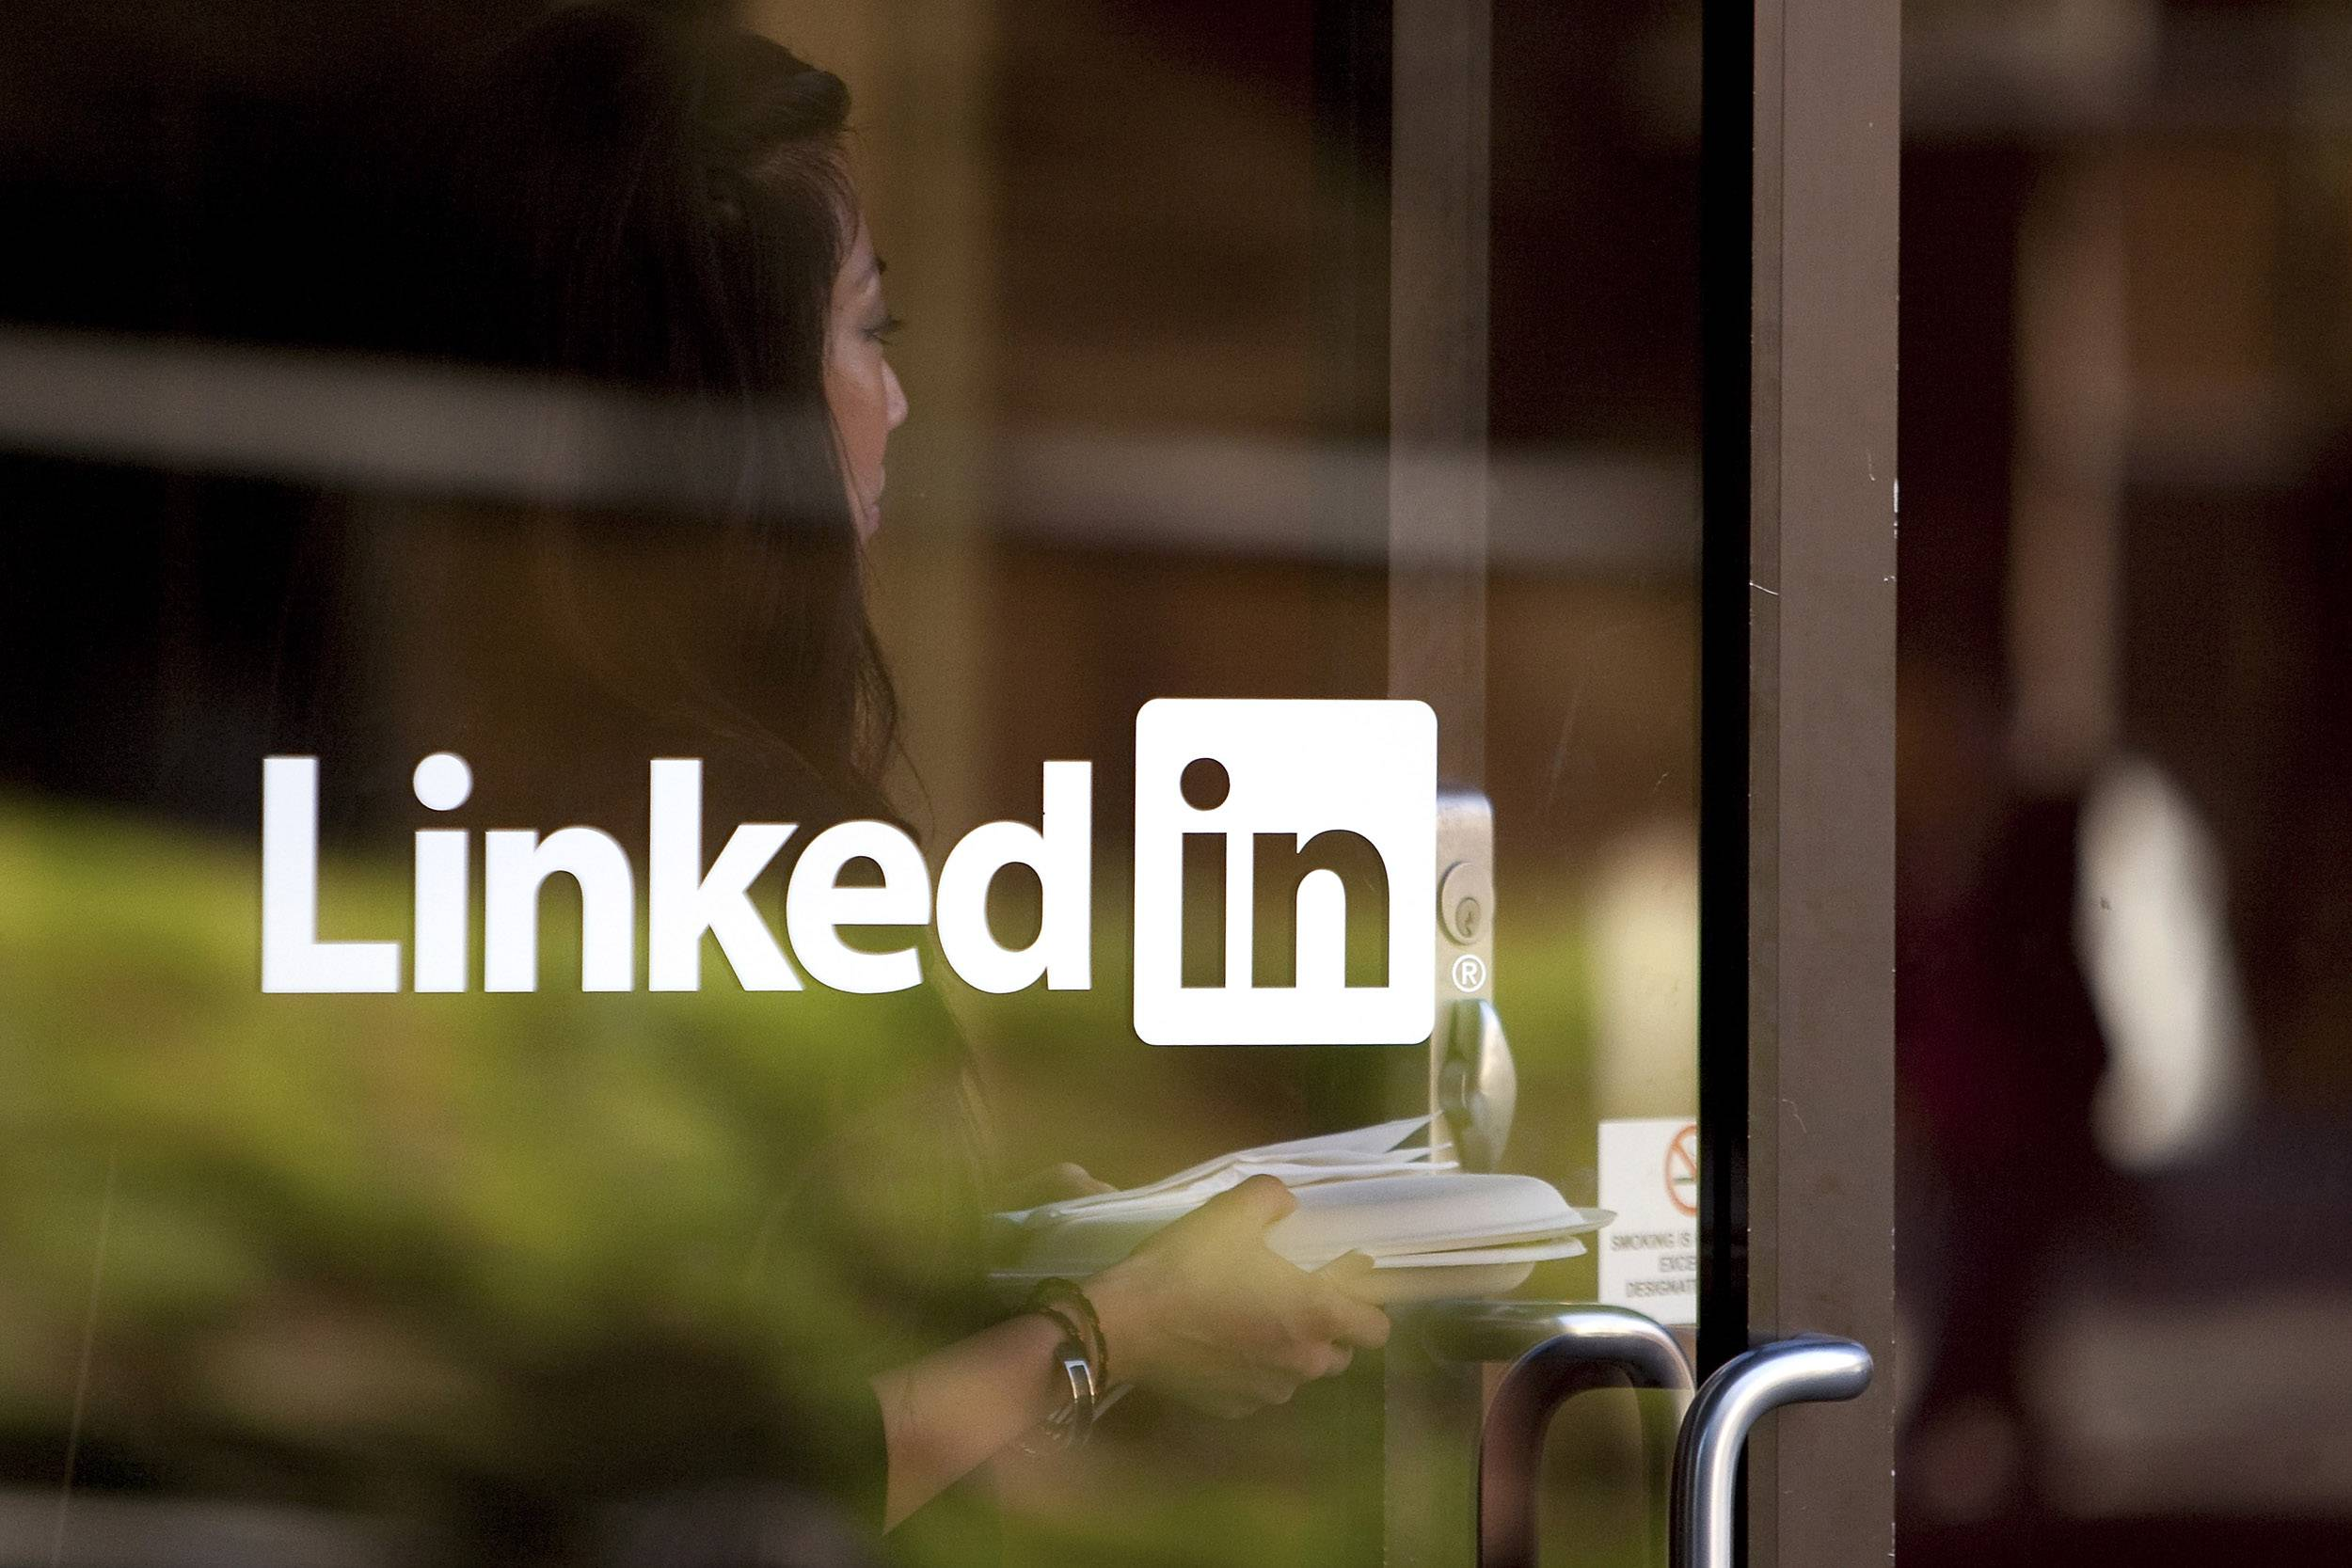 LinkedIn Corp. company headquarters in Mountain View, California. San Francisco Mayor Ed Lee says the professional networking site will expand its presence in the city by anchoring a high-rise office building under construction.